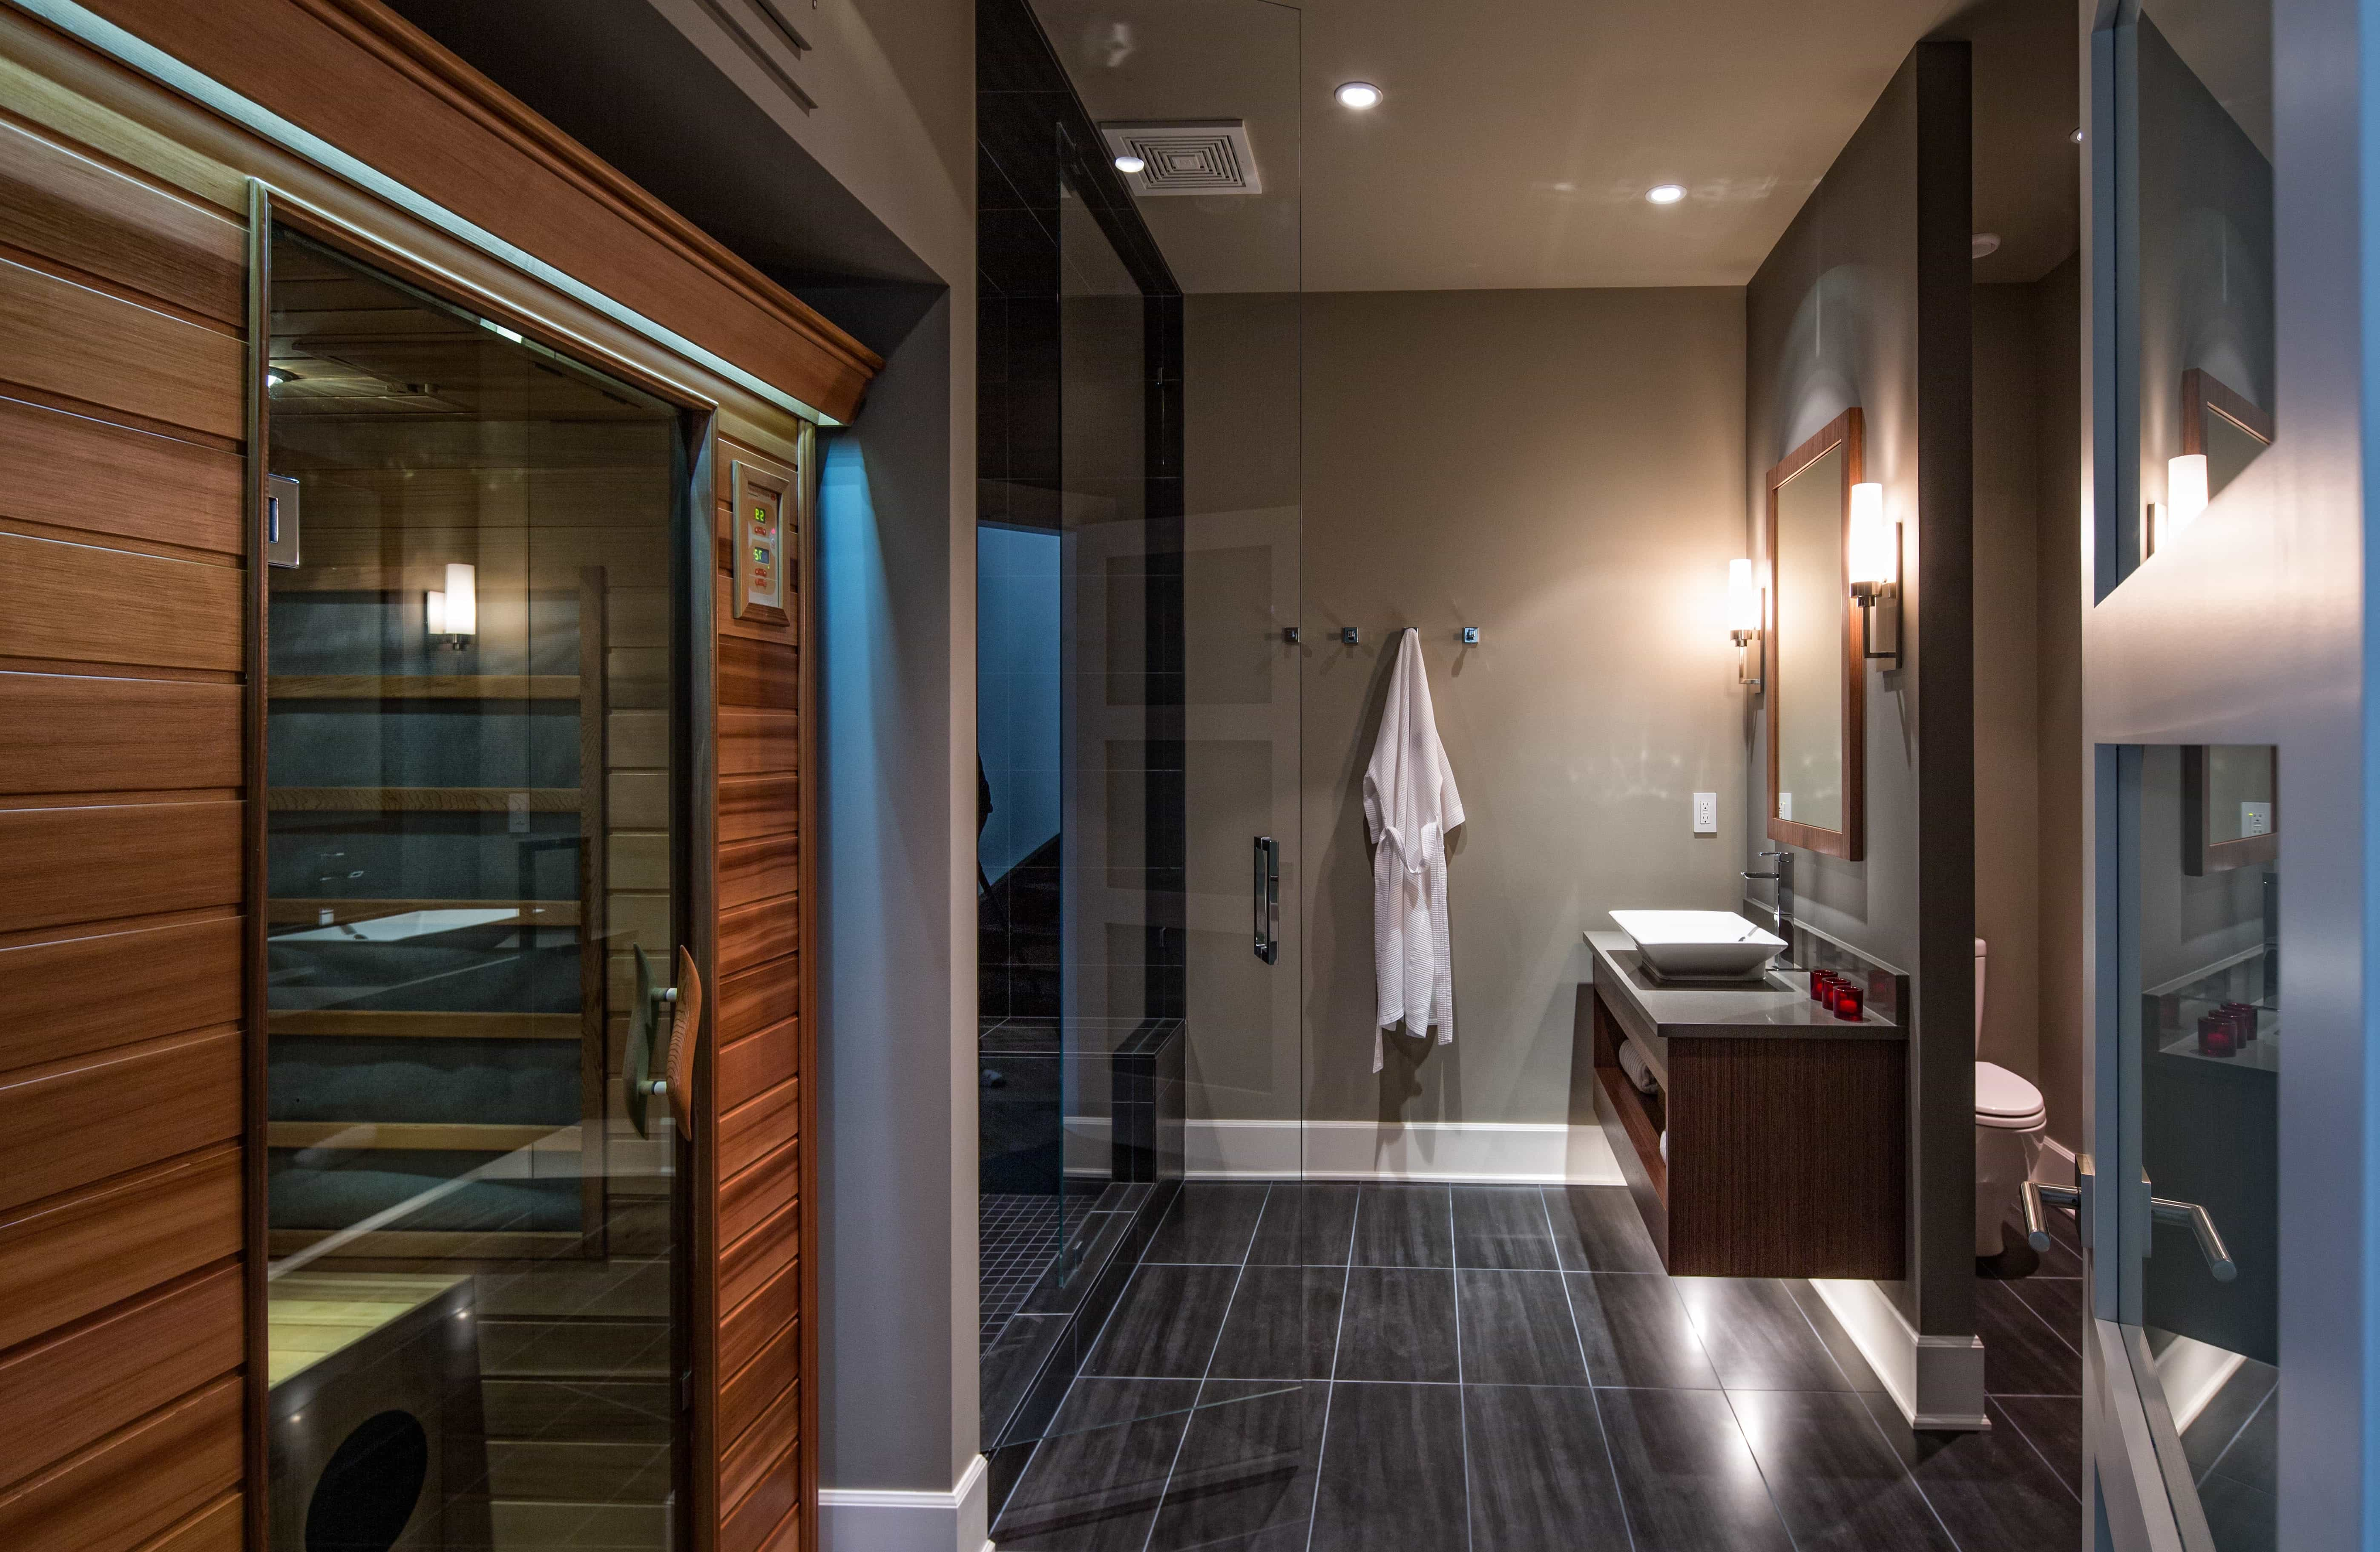 Masculine Contemporary Spa Bath And Sauna With Black Tile Floor And Wall Color (Image 10 of 10)